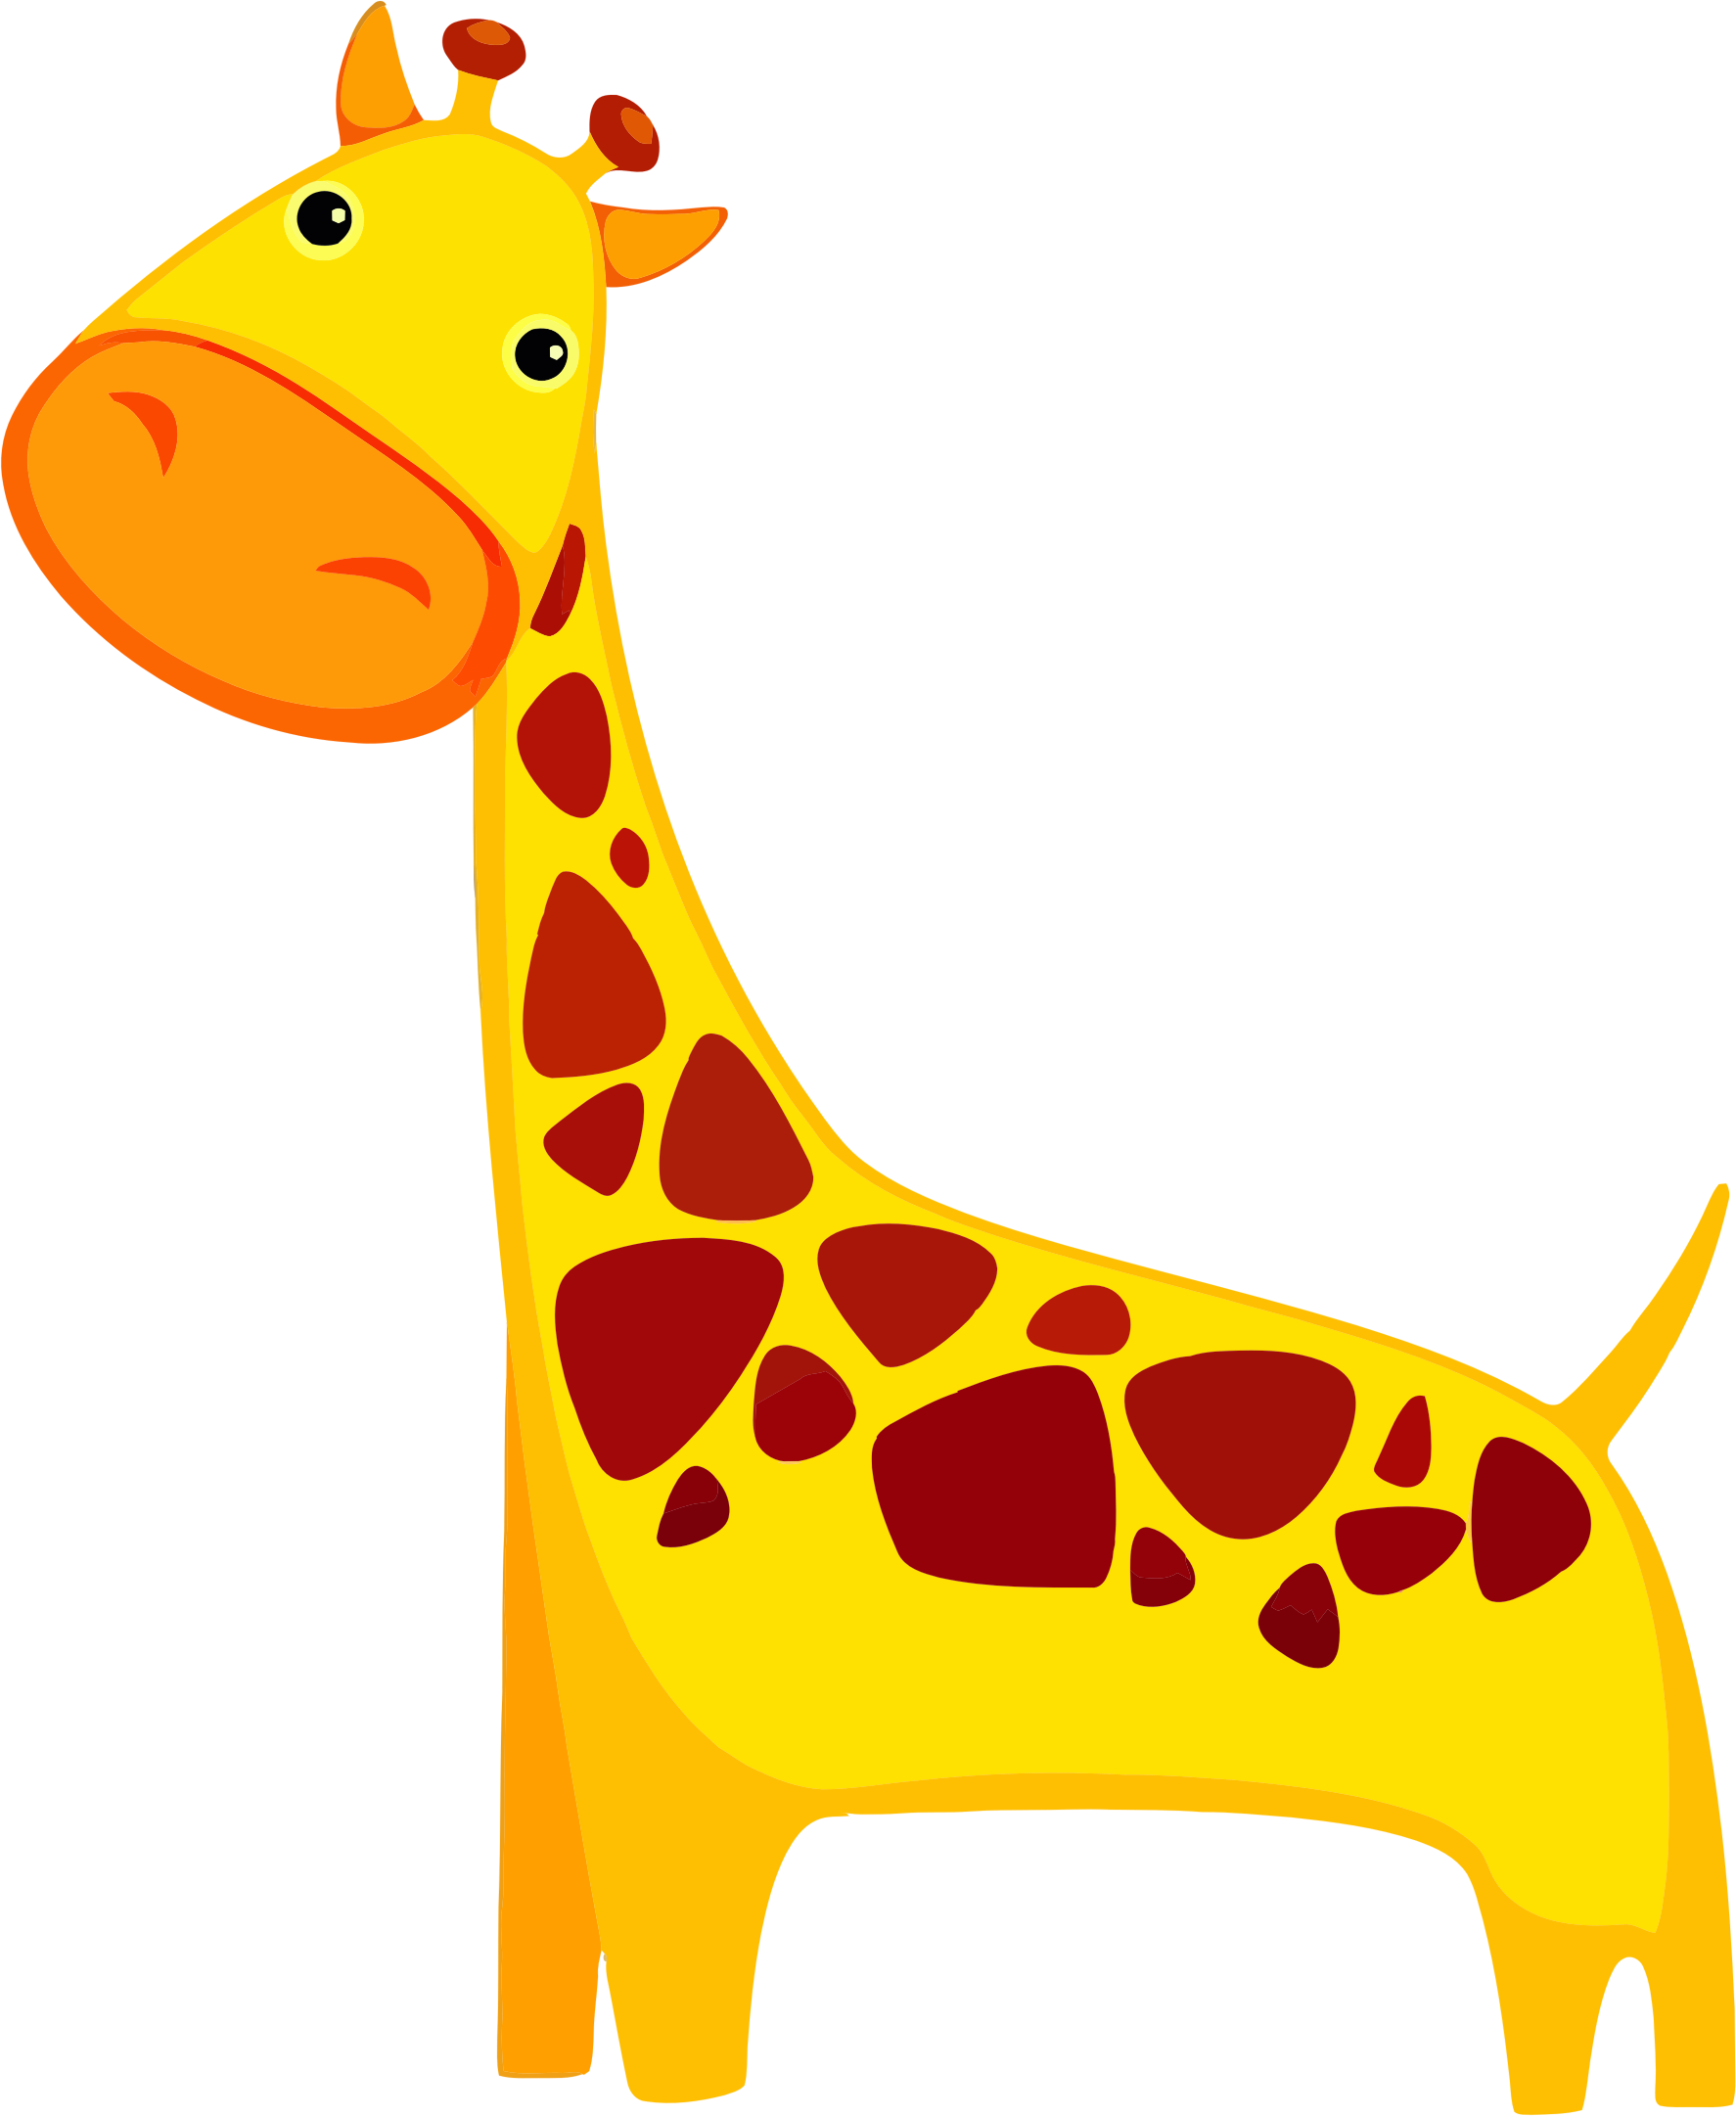 Cartoon Giraffe by GDJ